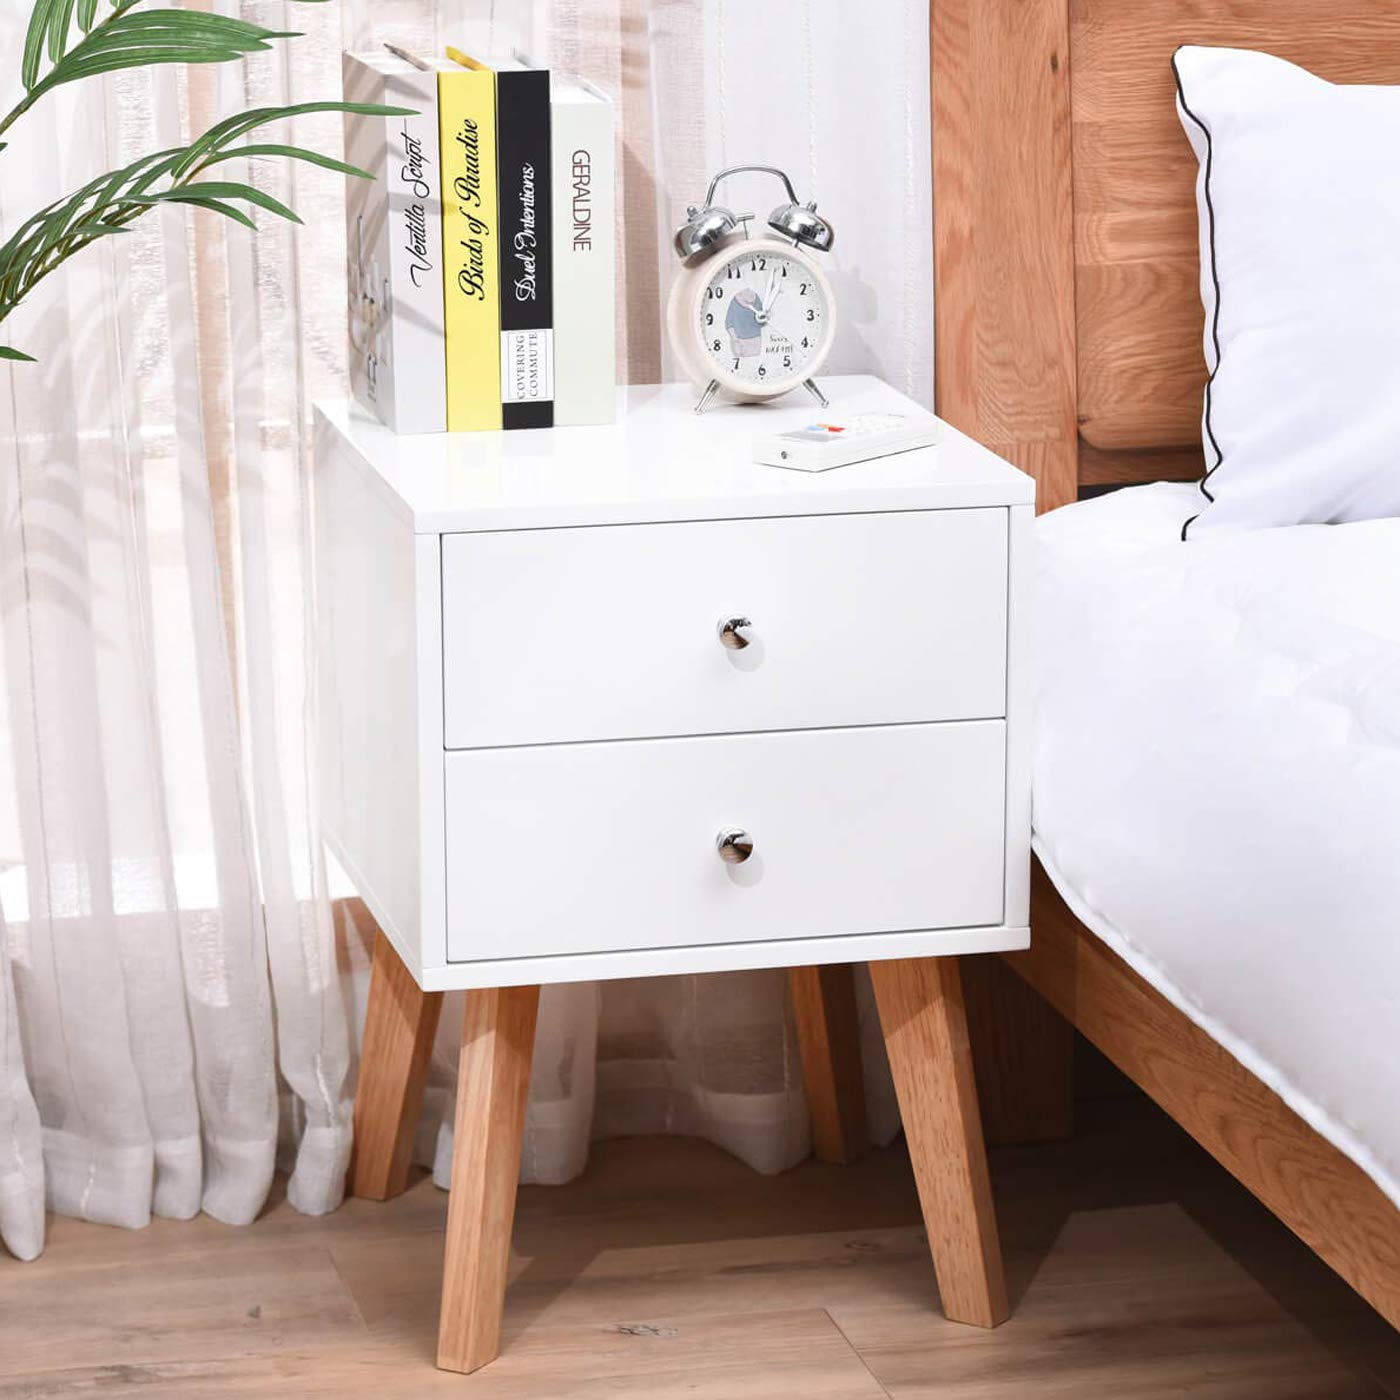 TaoHFE White Nightstand Bedroom Night Stand End Table Side Table Coffee Table with 2 Drawers